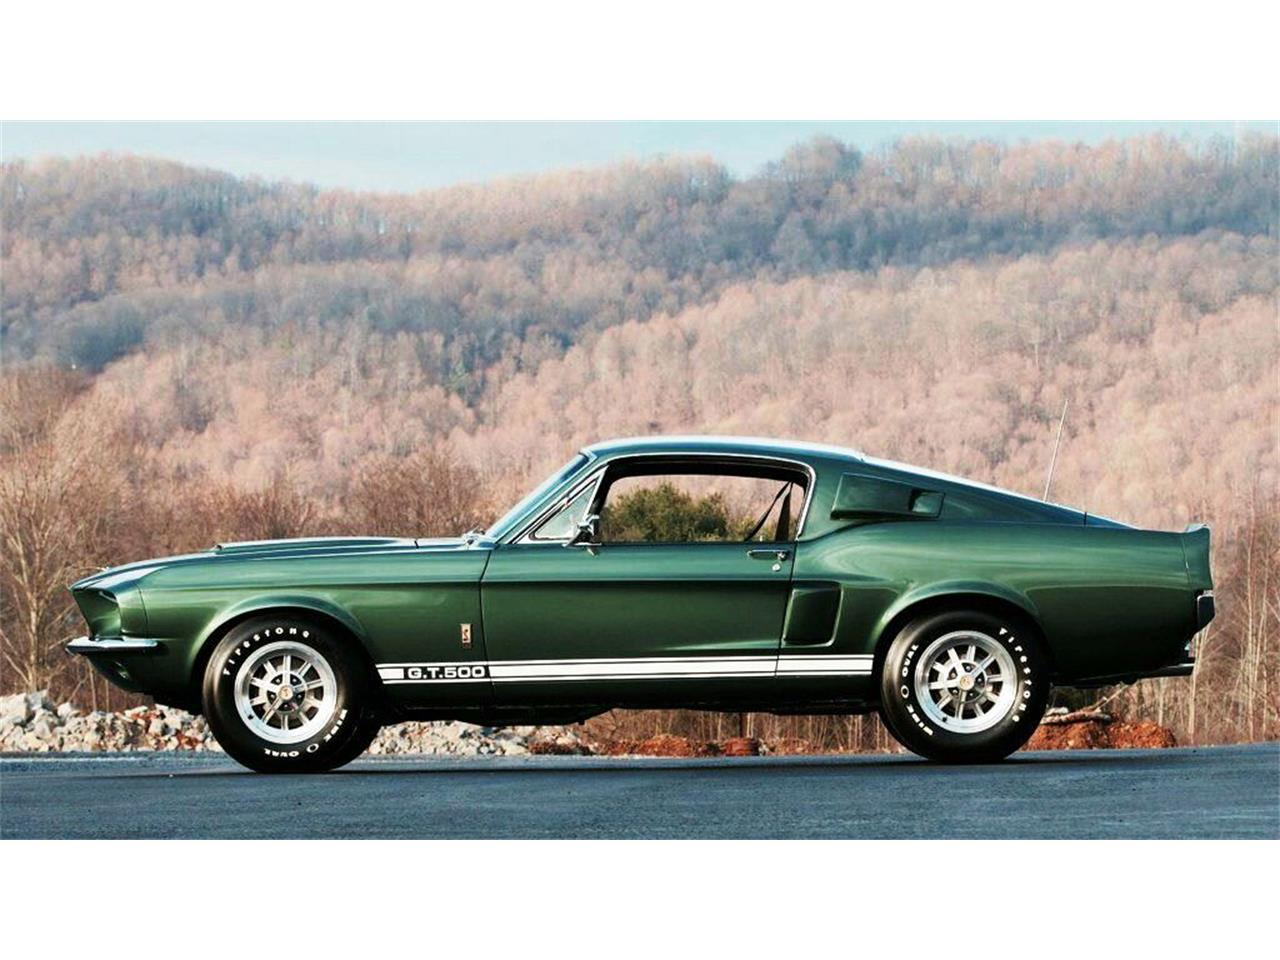 1967 Shelby Gt500 For Sale Classiccars Com Cc 1369260